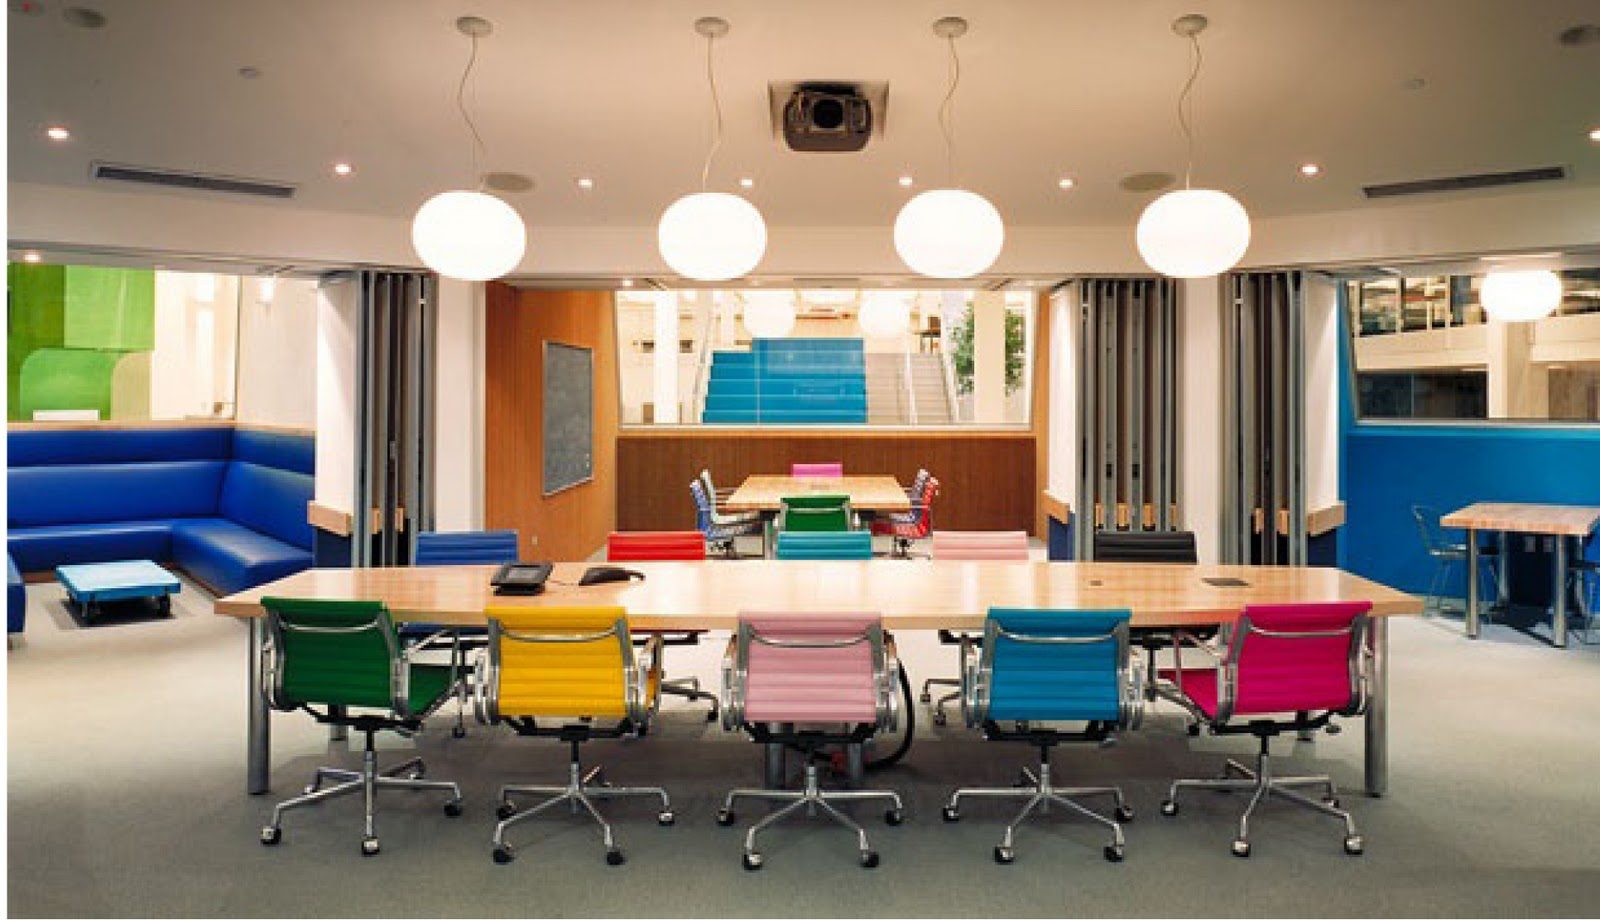 Art Rent and Lease: A Candy-Colored Conference Room